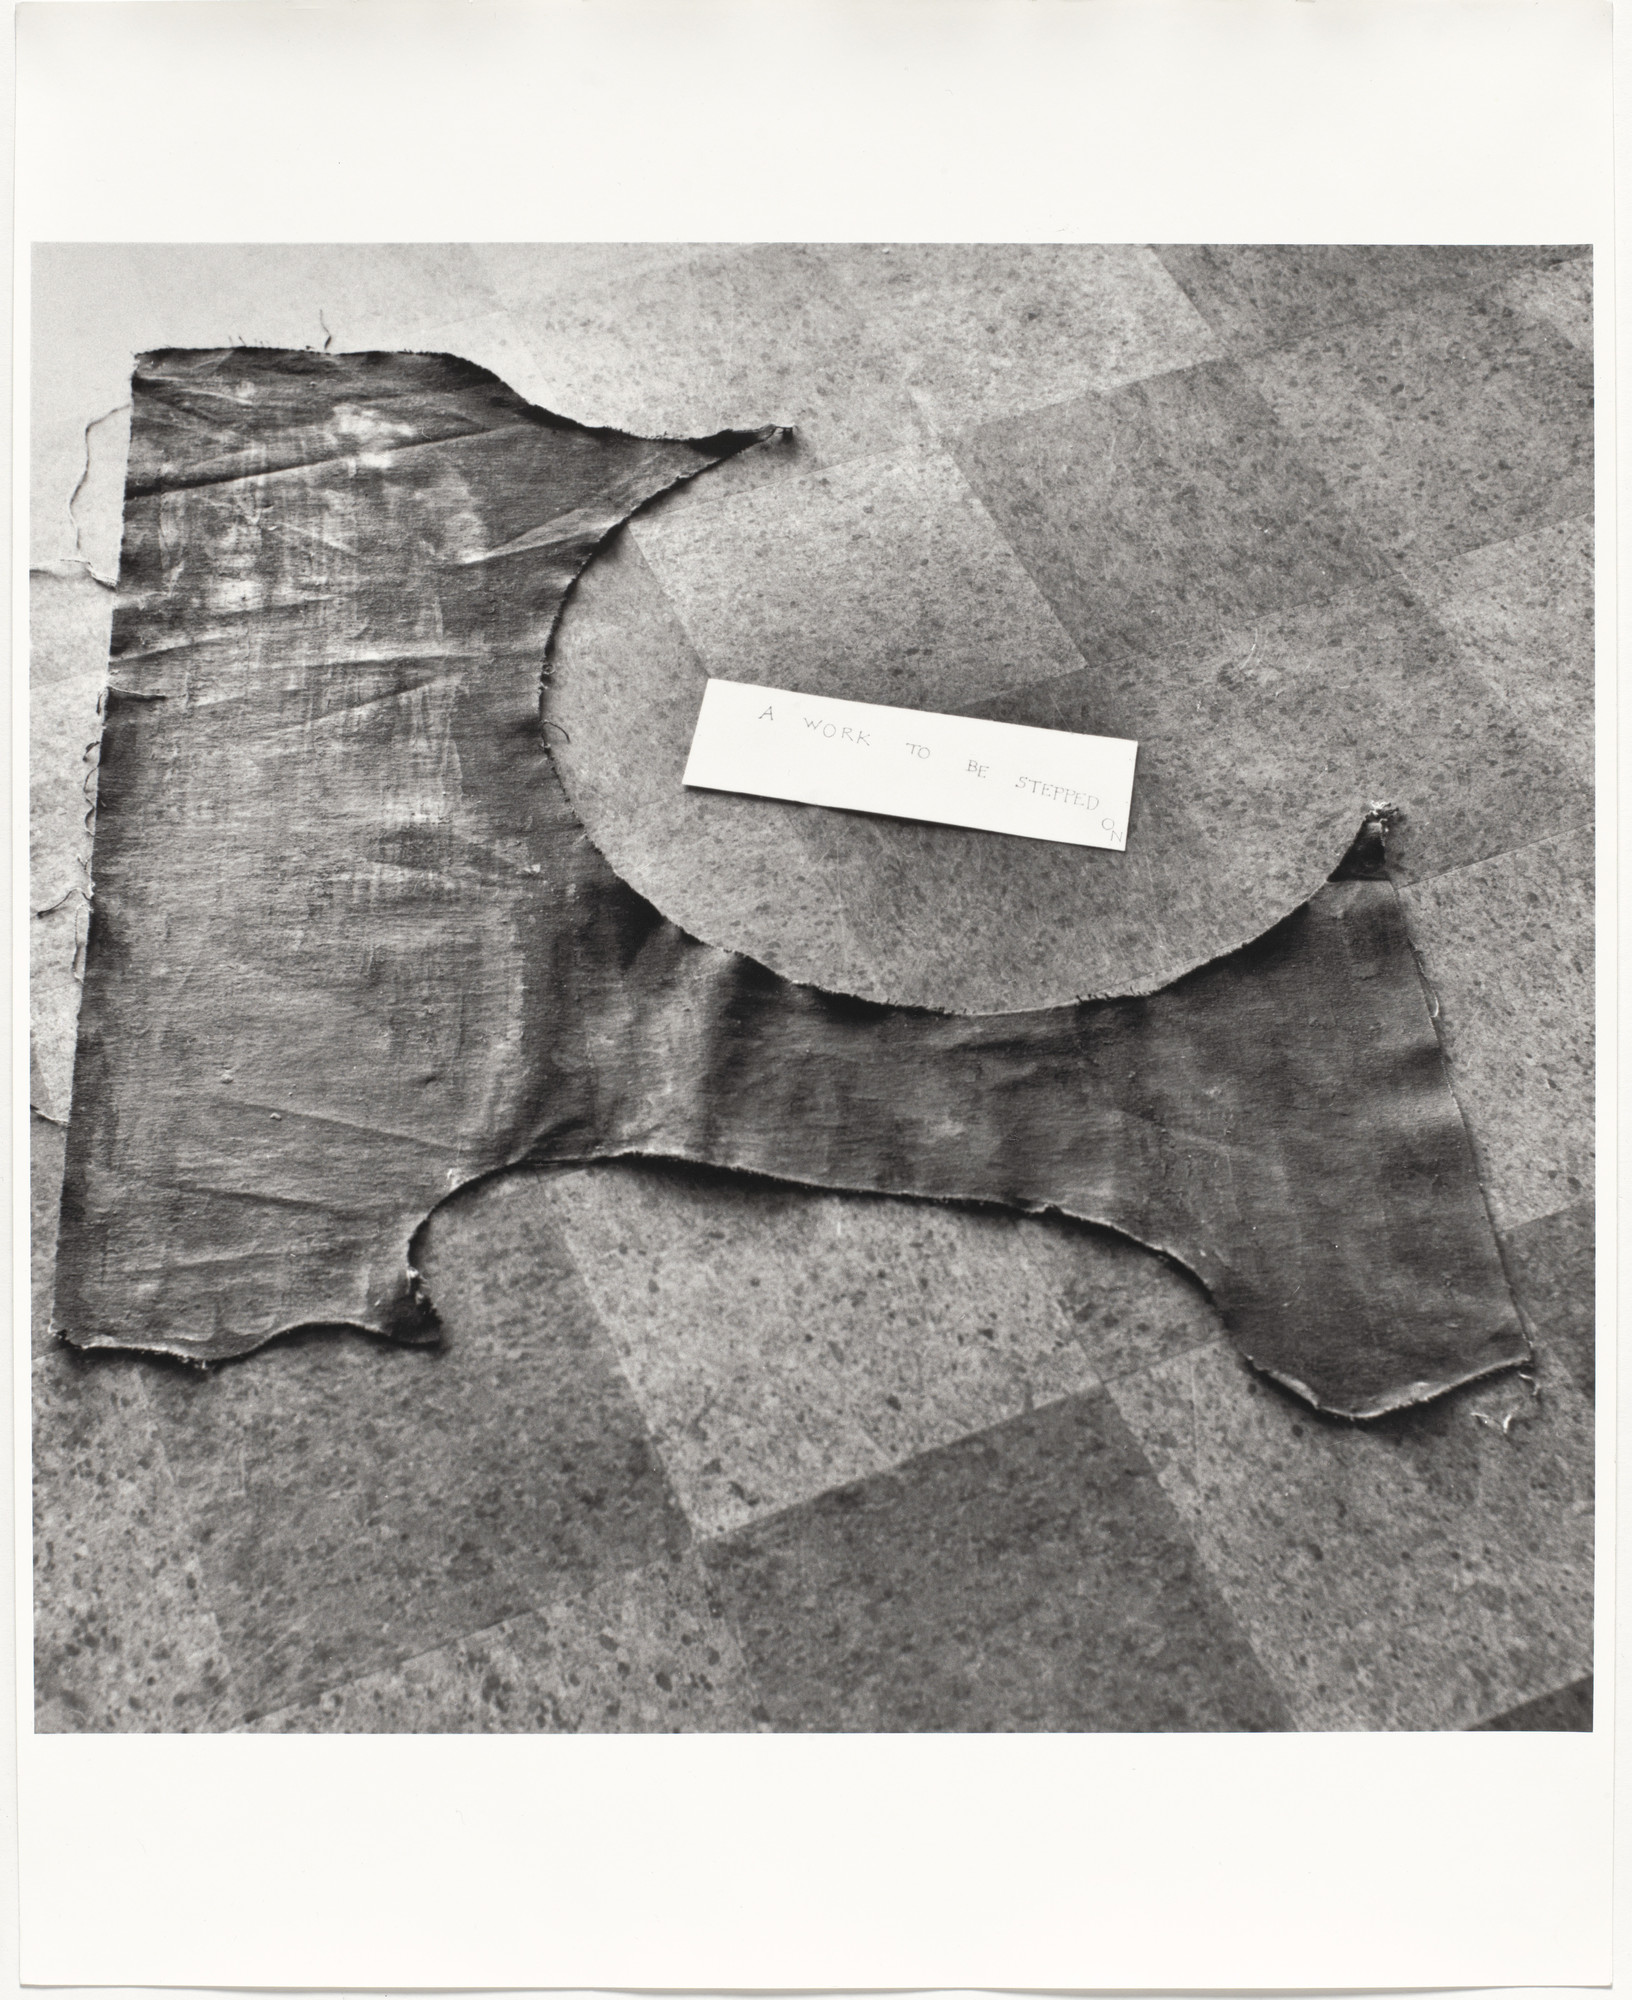 Ono, Painting To Be Stepped On, 1960/61